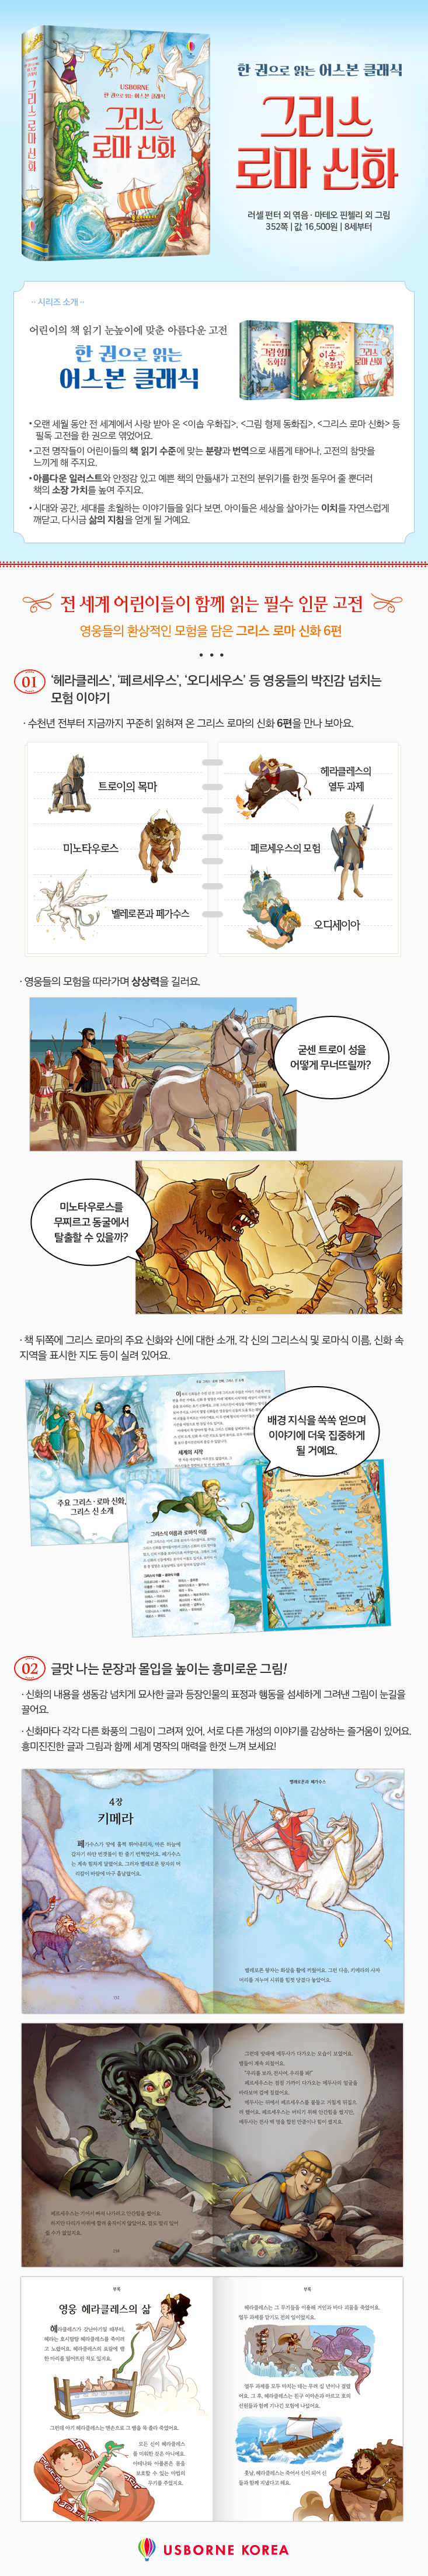 Illustrated_Stories_from_the_Greek_Myth